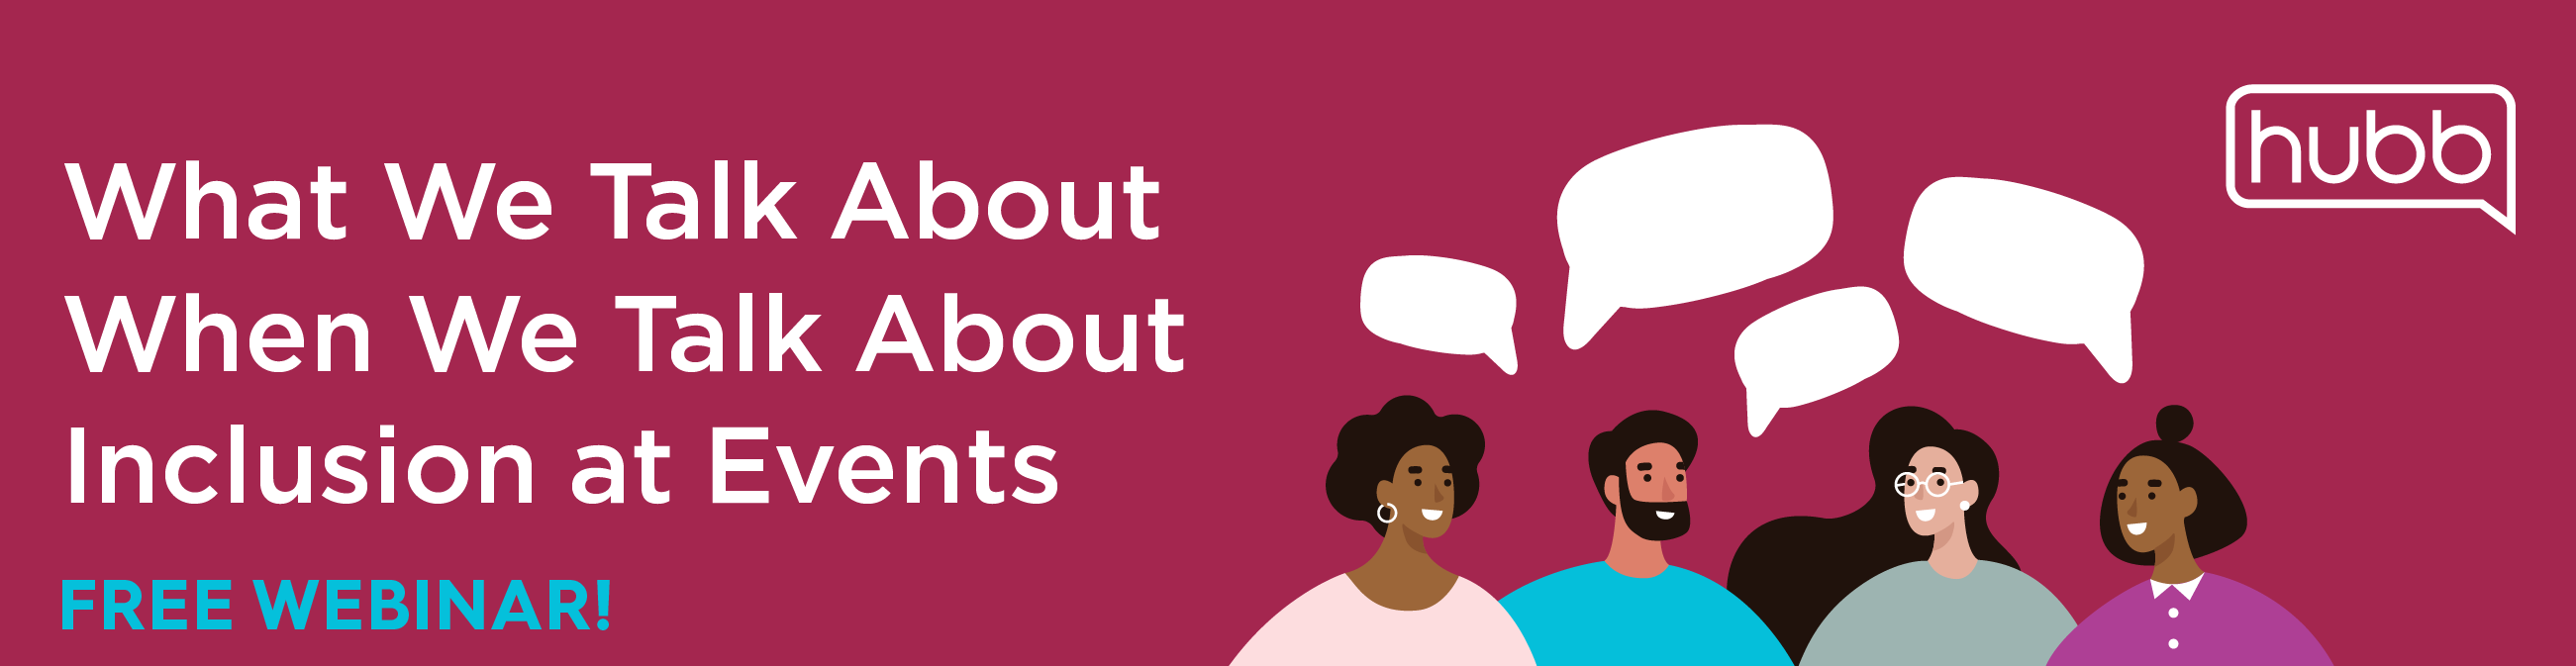 Talk-About-Inclusion-At-Events-Blog